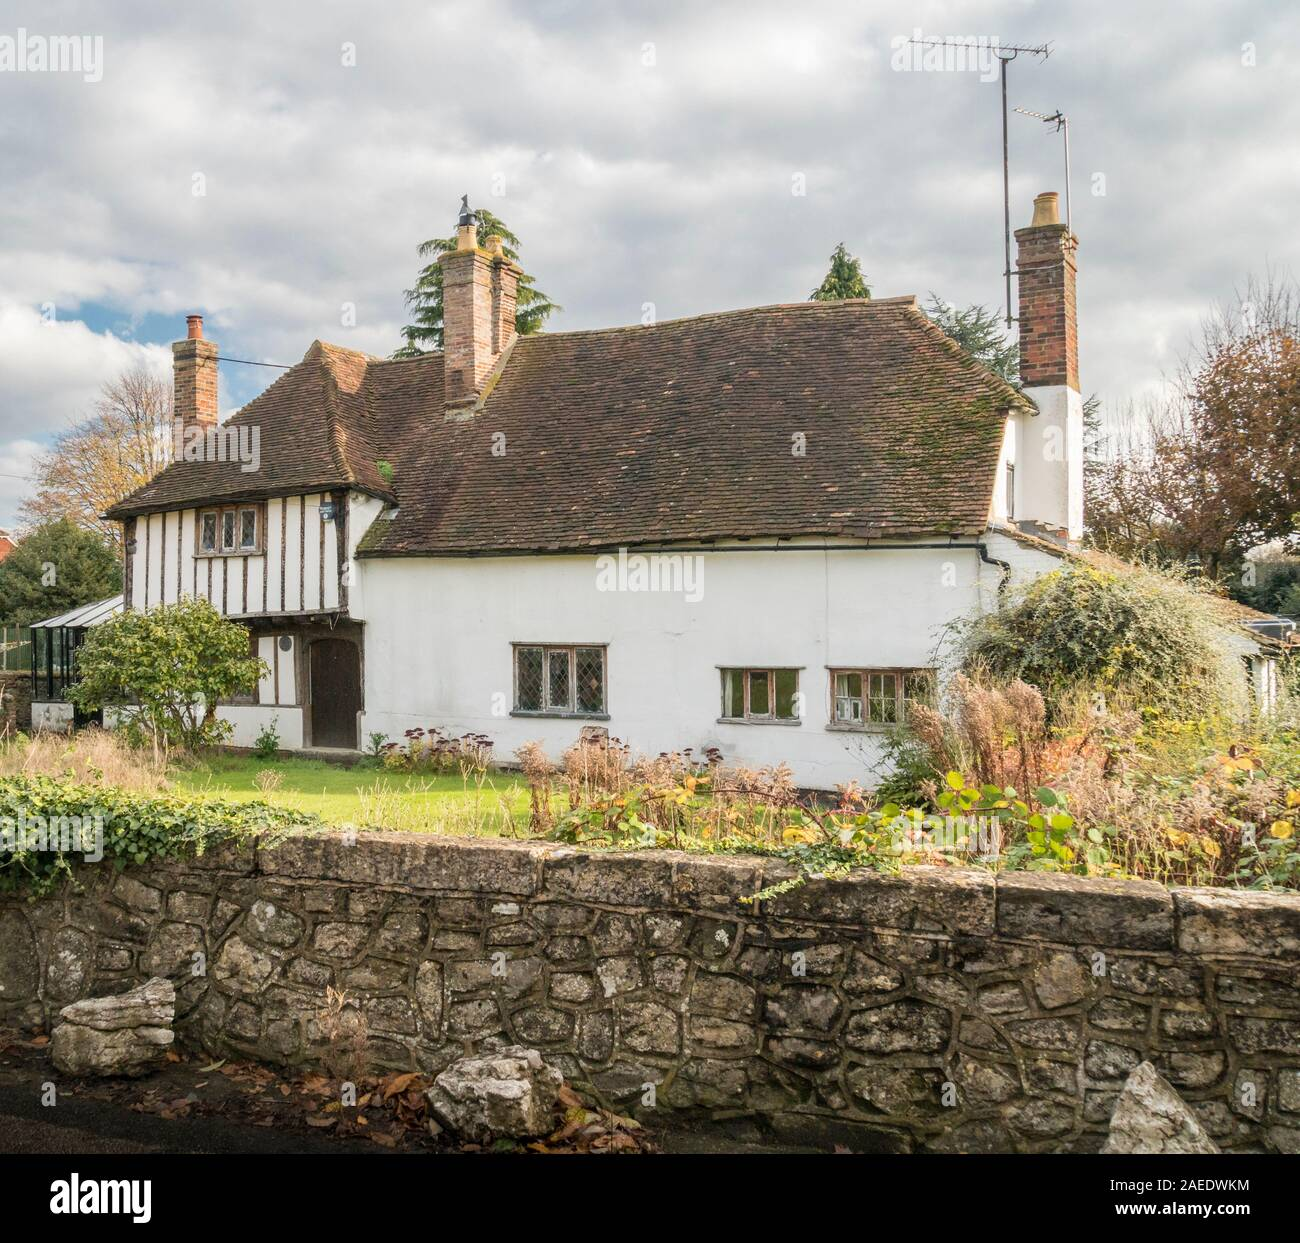 An ancient cottage in the village of Weavering, Kent, UK Stock Photo